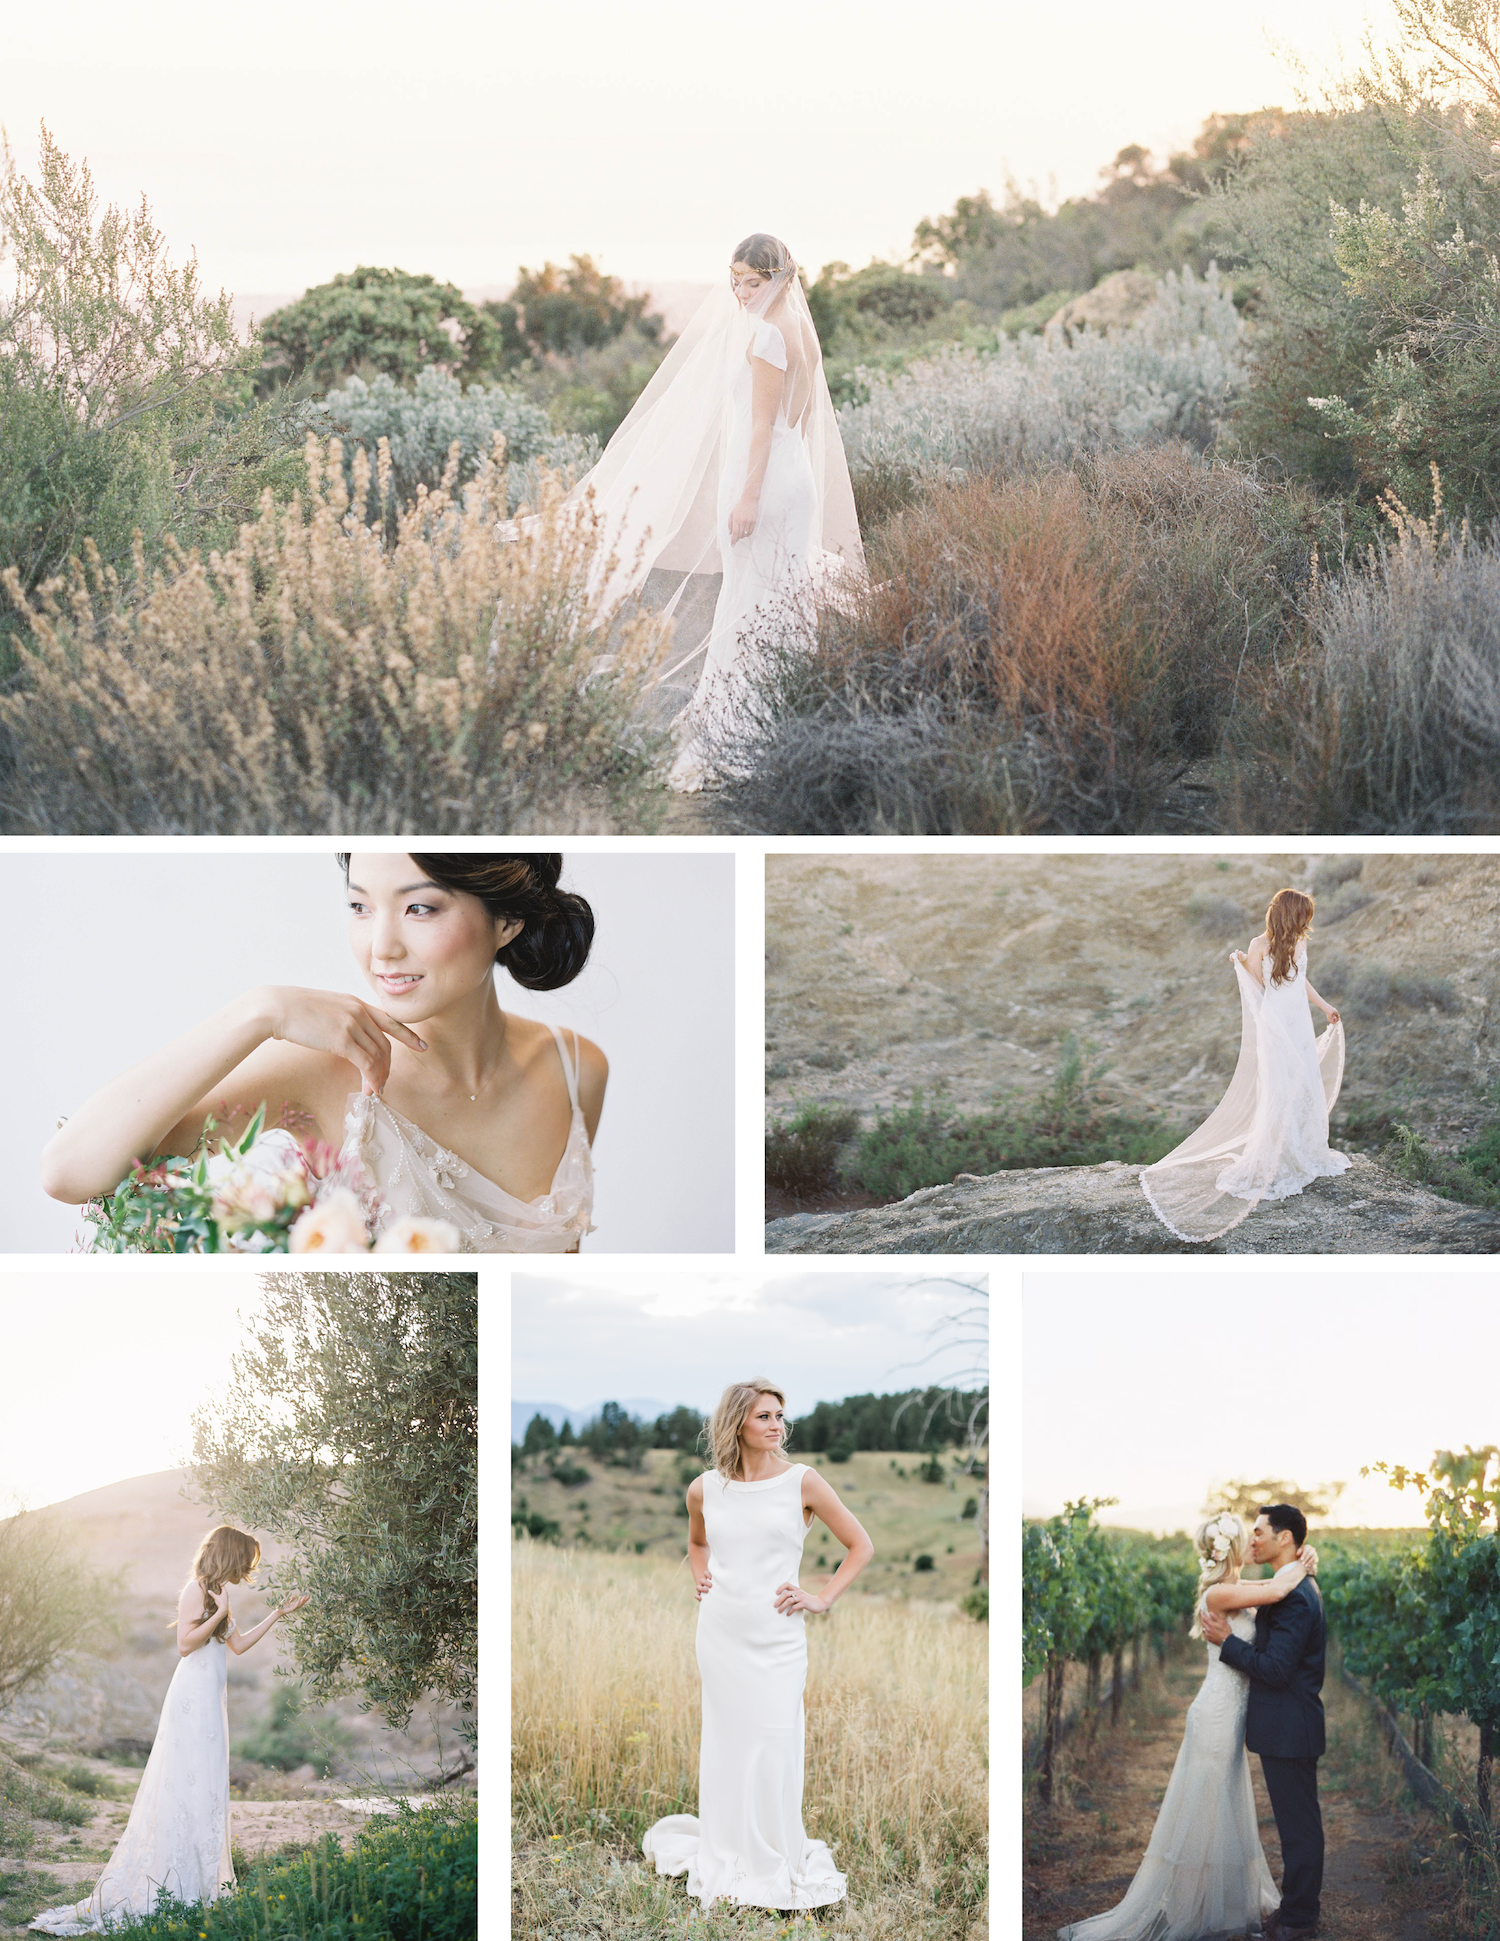 Designer Sarah Janks wedding gowns that are whimsical and romantic